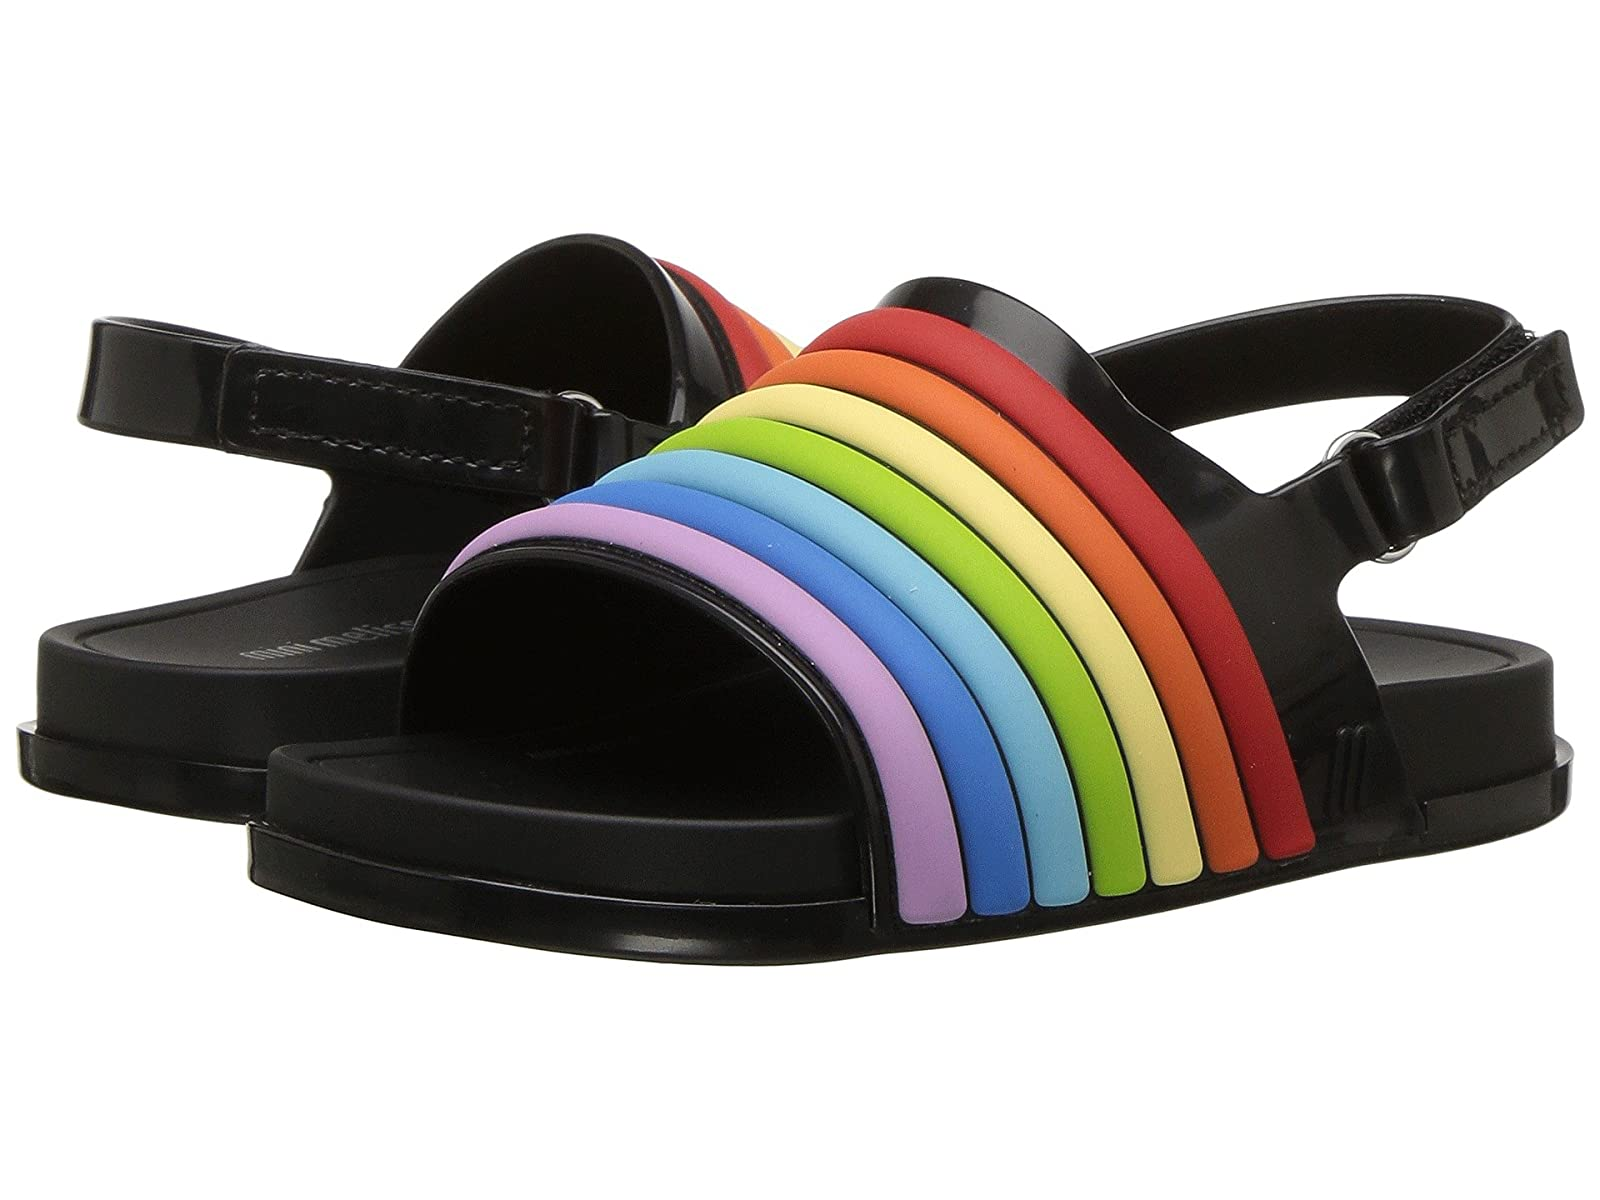 Mini Melissa Mini Beach Slide Sandal Rainbow (Toddler/Little Kid)Atmospheric grades have affordable shoes